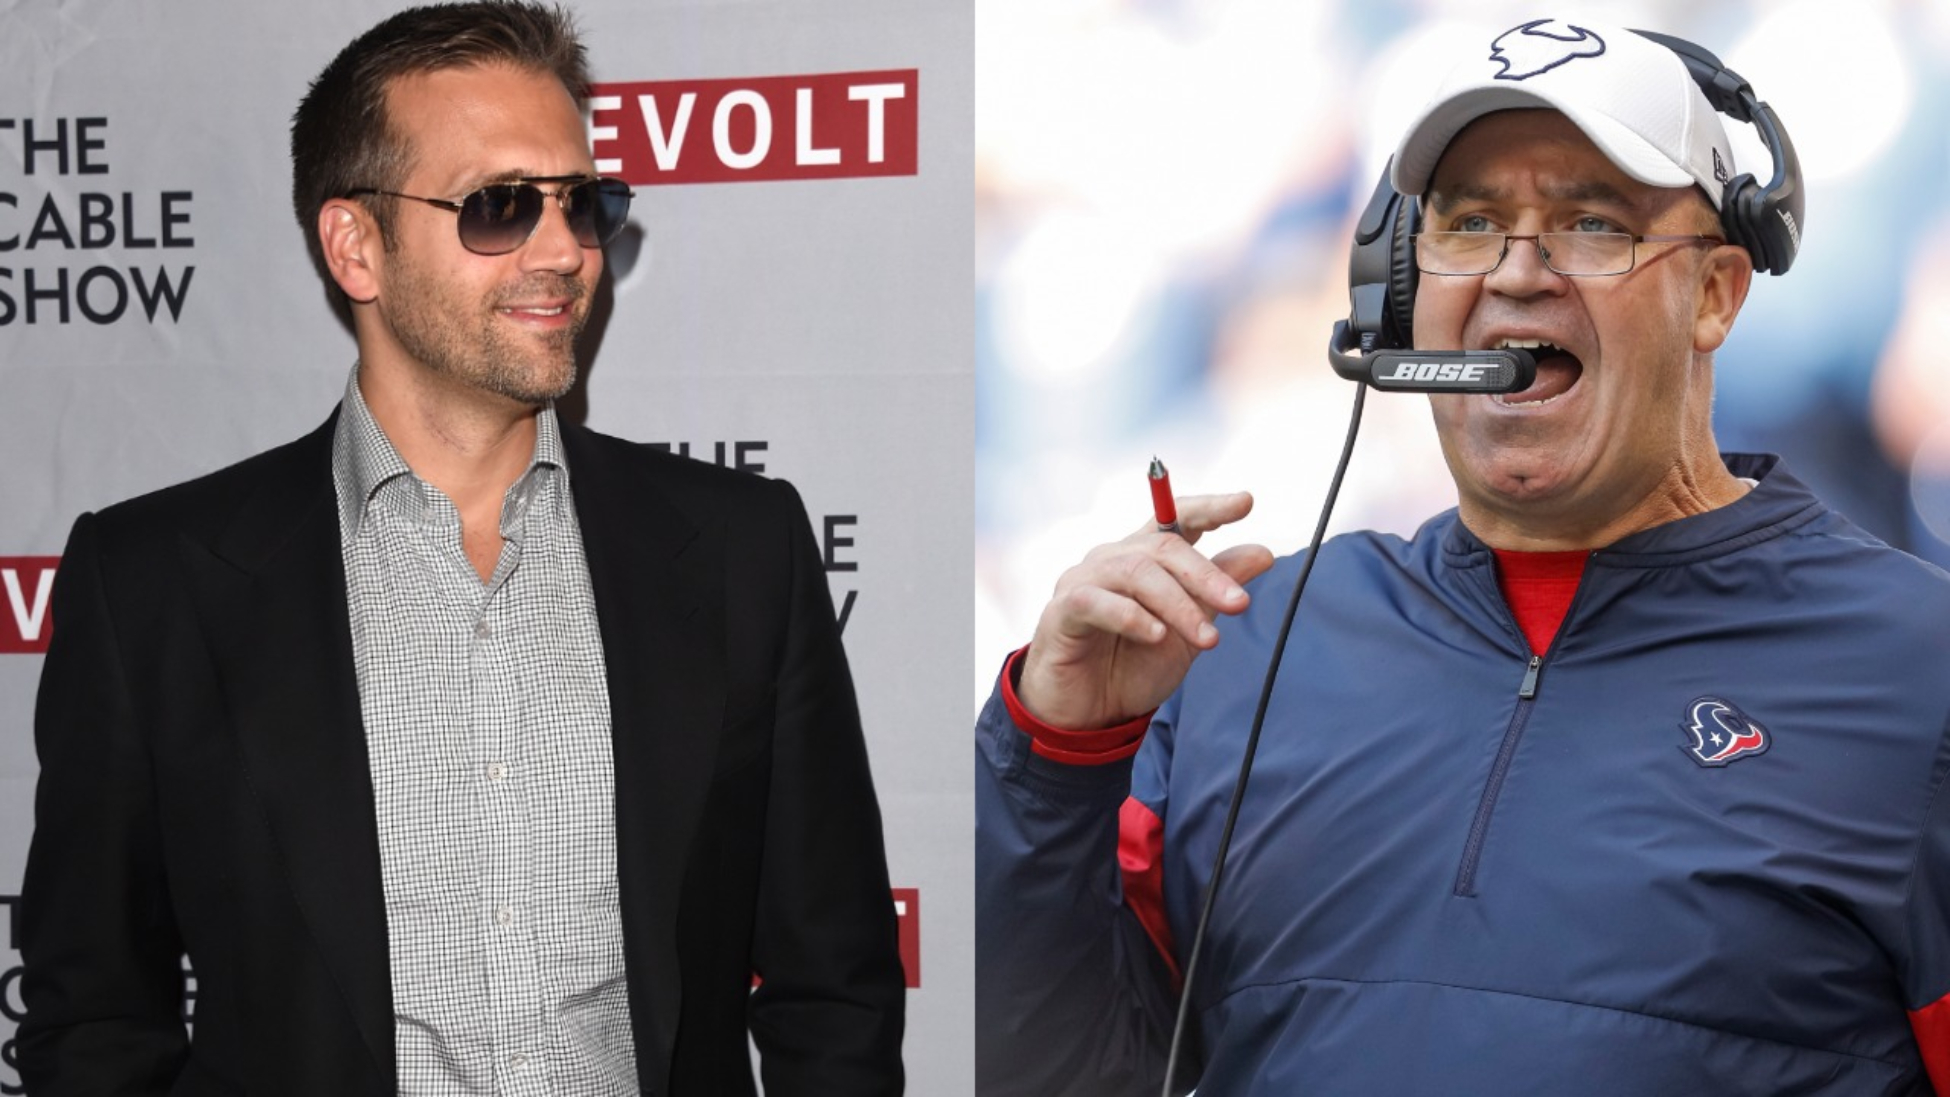 While some question if Bill O'Brien deserved to get fired by the Houston Texans. ESPN's Max Kellerman firmly believes he deserves his fate.